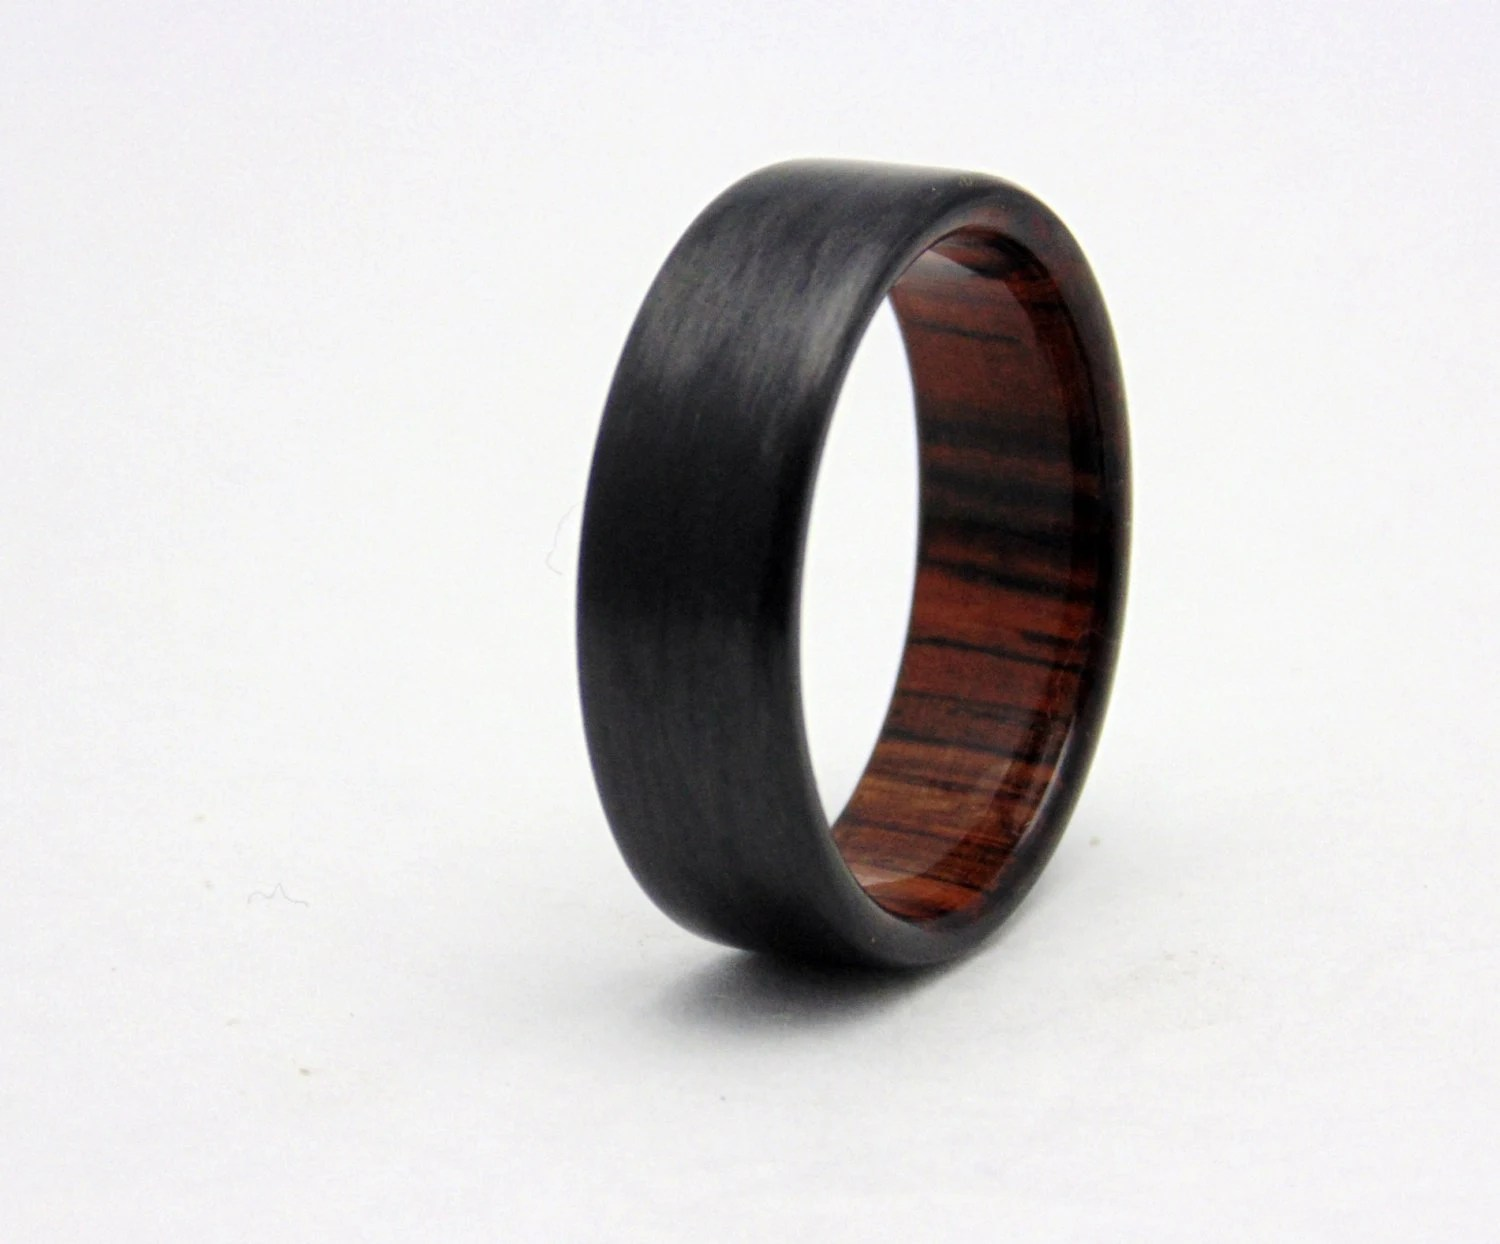 Carbon Fiber Wedding Band With Cocobolo Wood Handmade Carbon